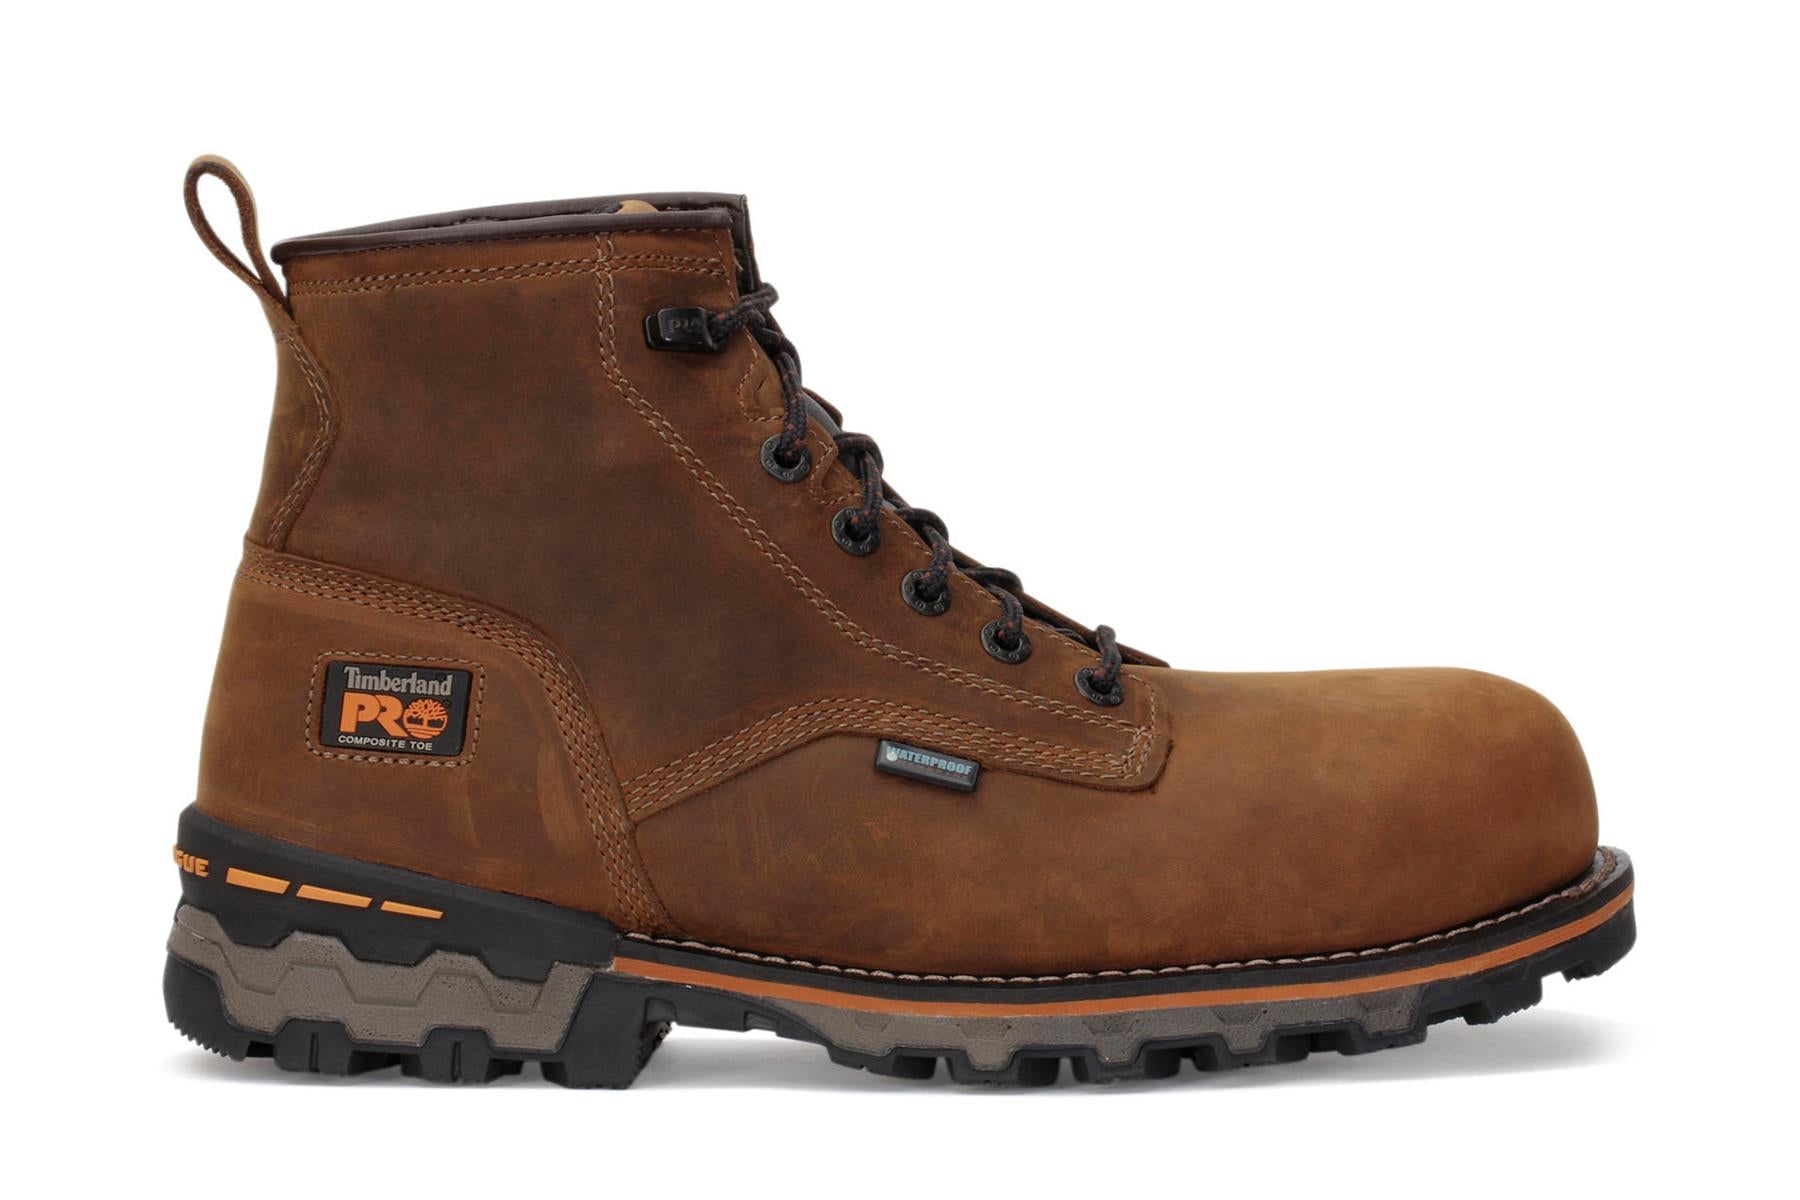 timberland-pro-mens-boondock-6-composite-safety-toe-work-boots-brown-a127g-main